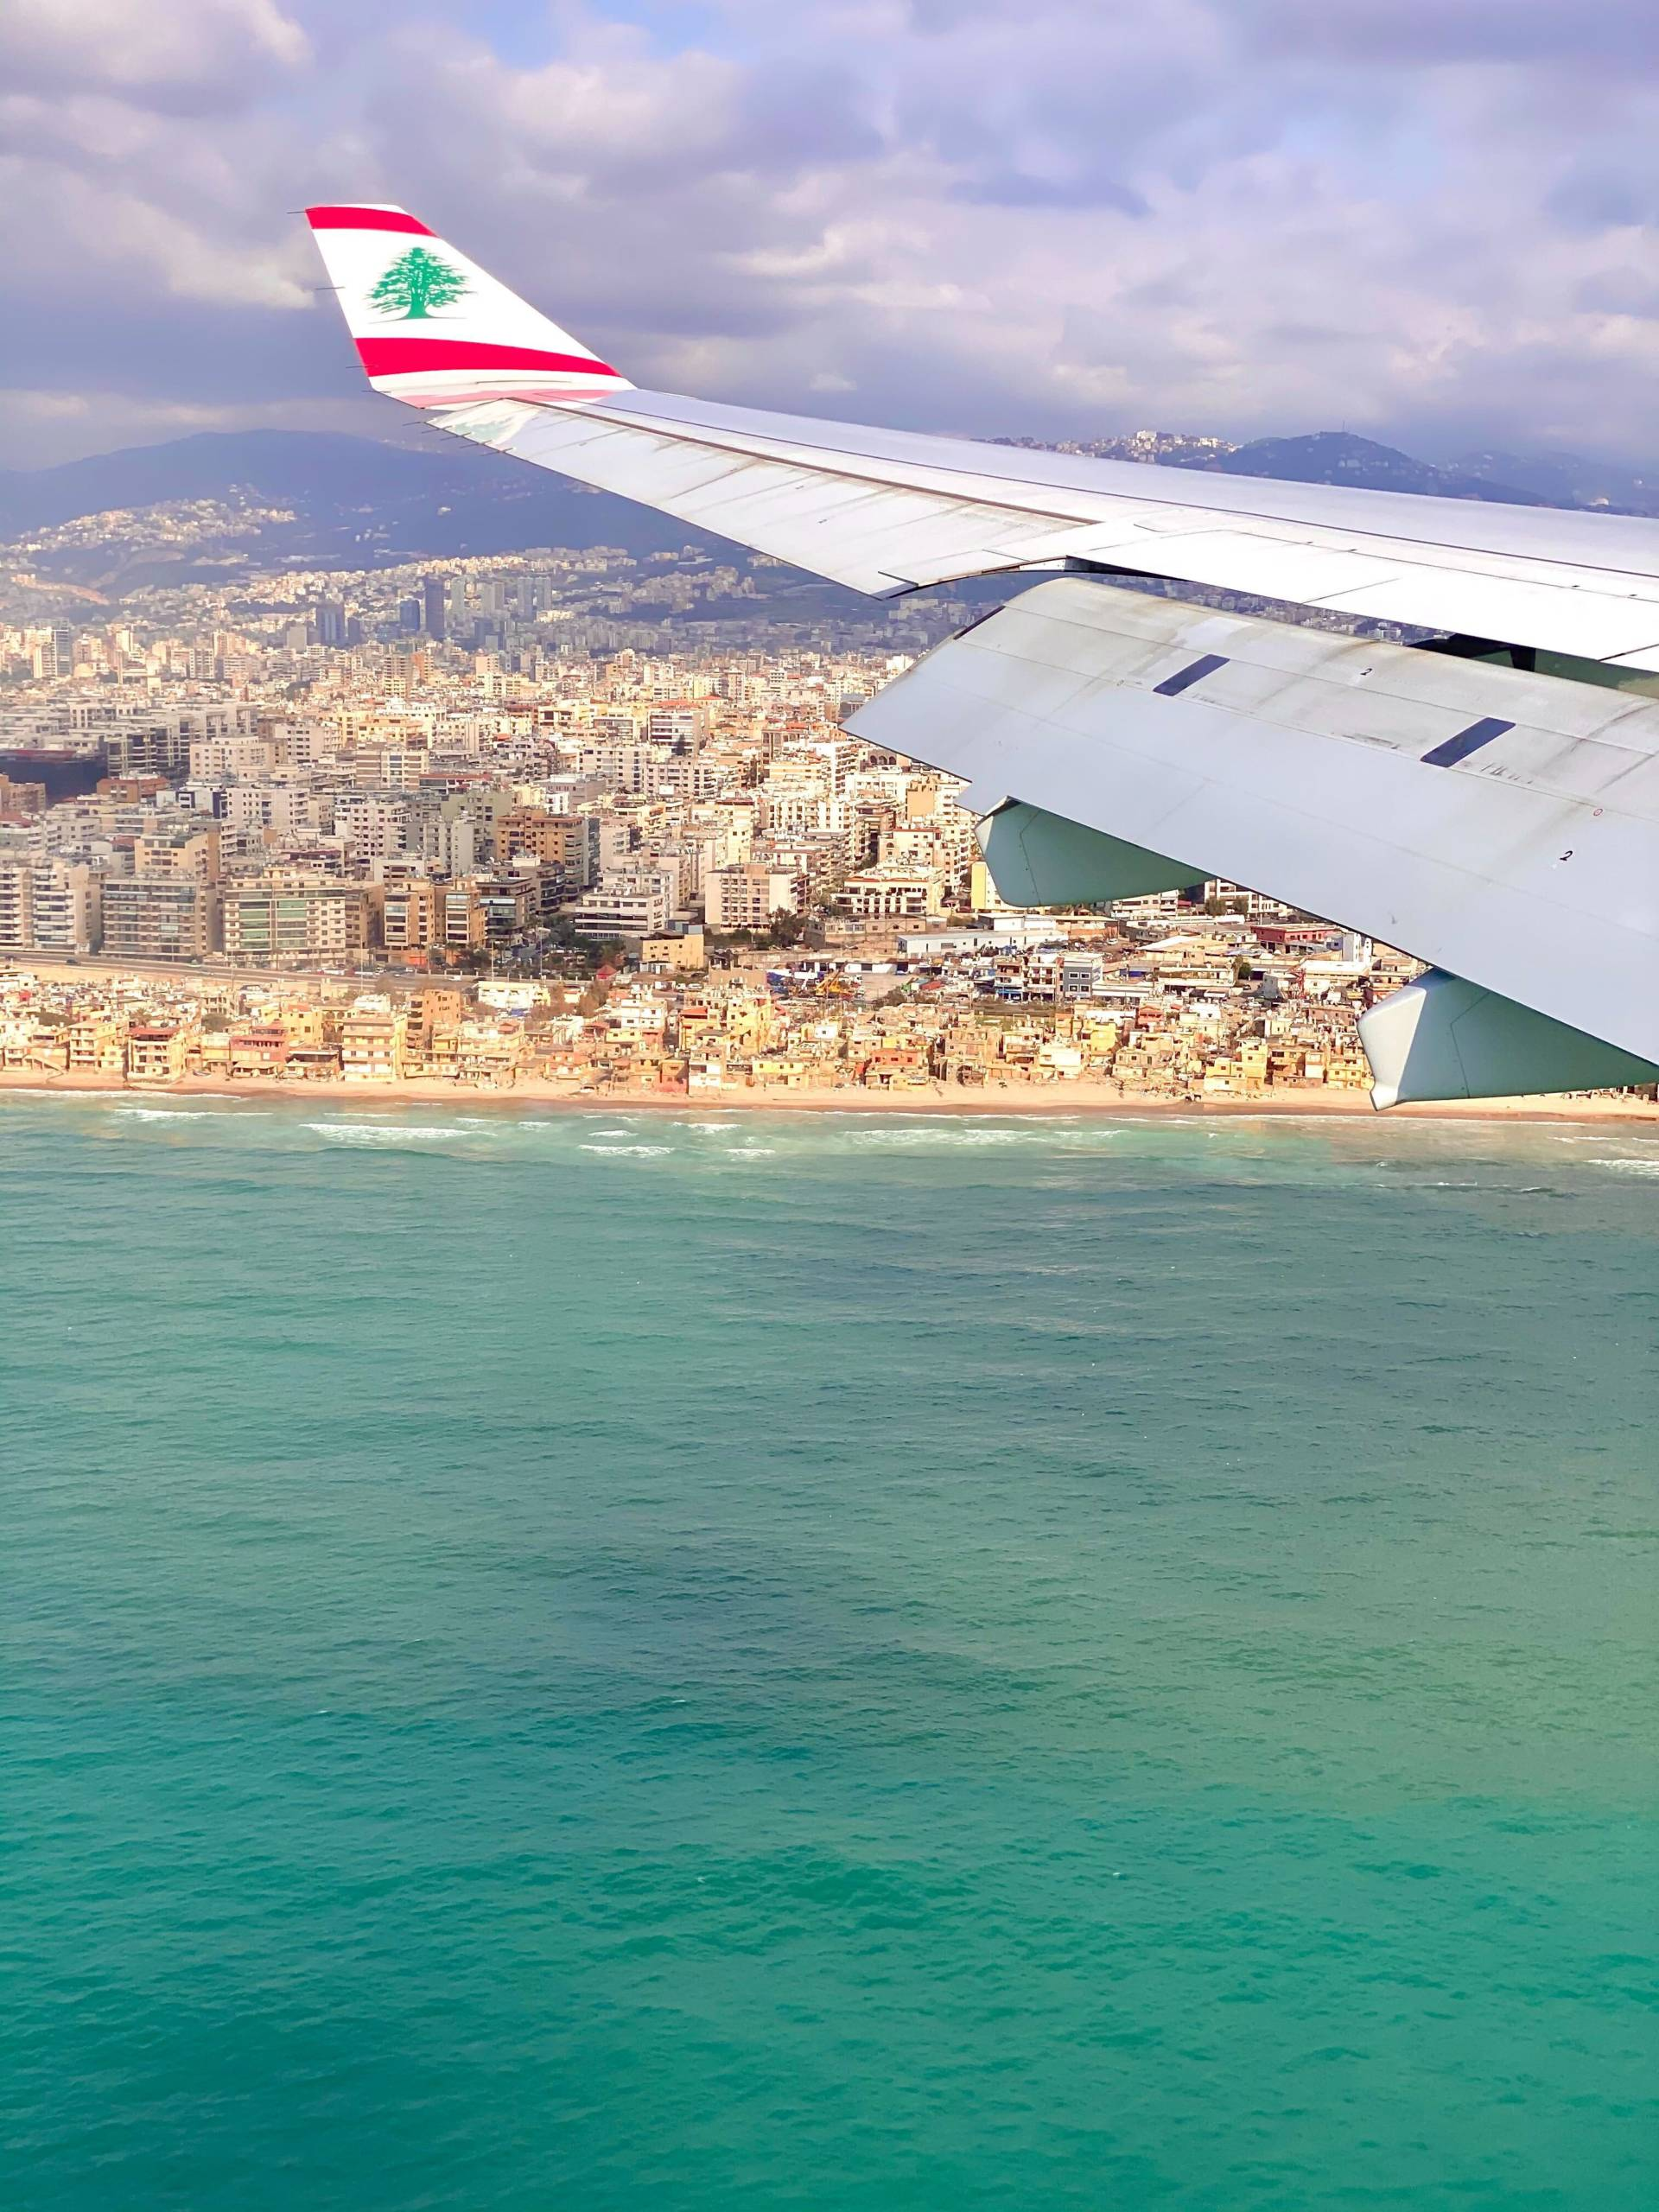 Beirut, Lebanon from the air. (Photo by Nicky Kelvin / The Points Guy)